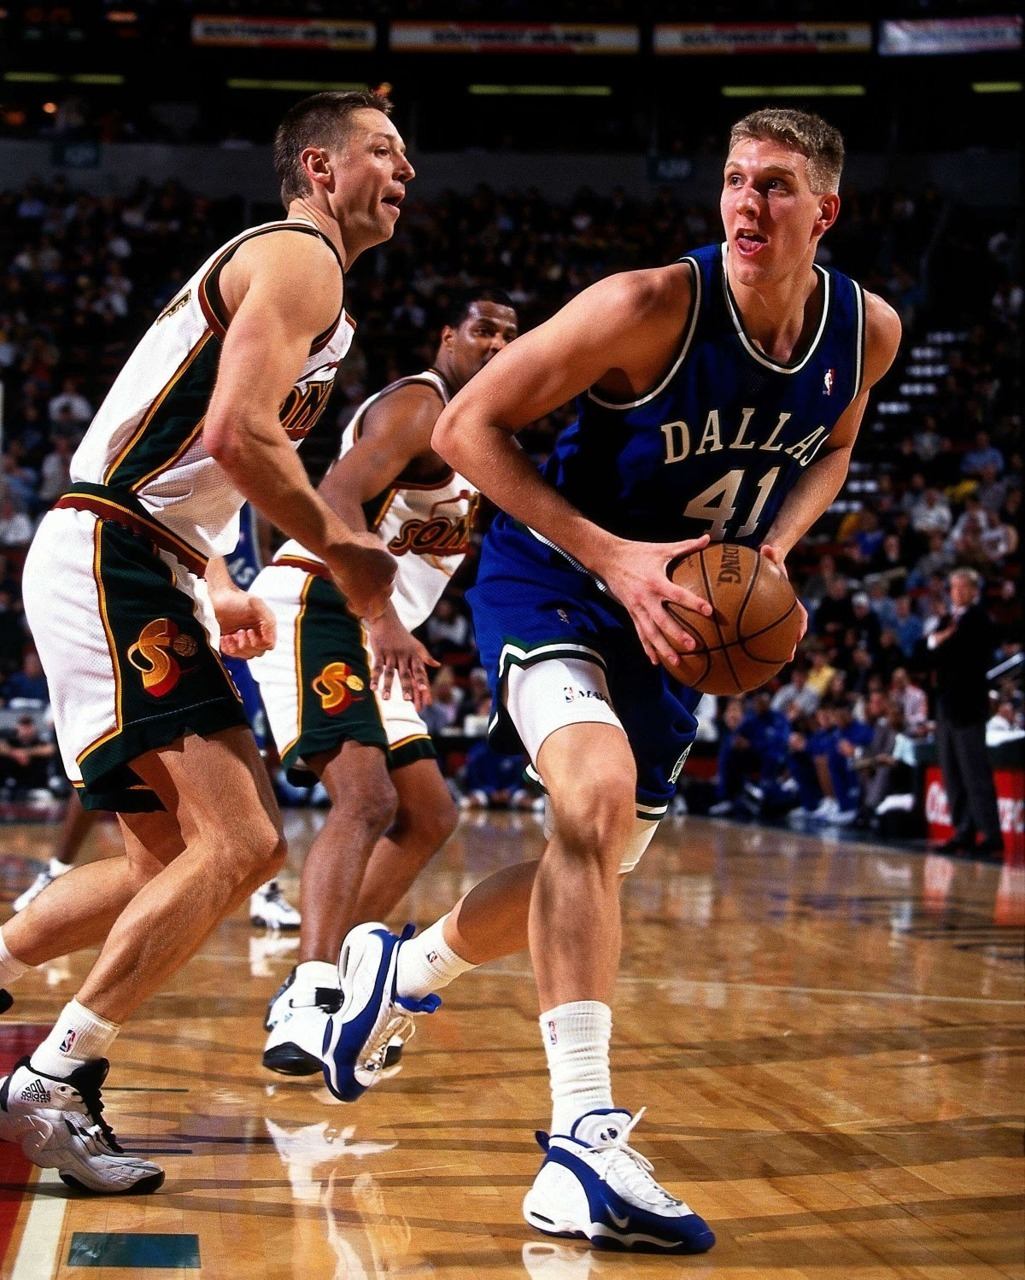 Dirk and Detlef